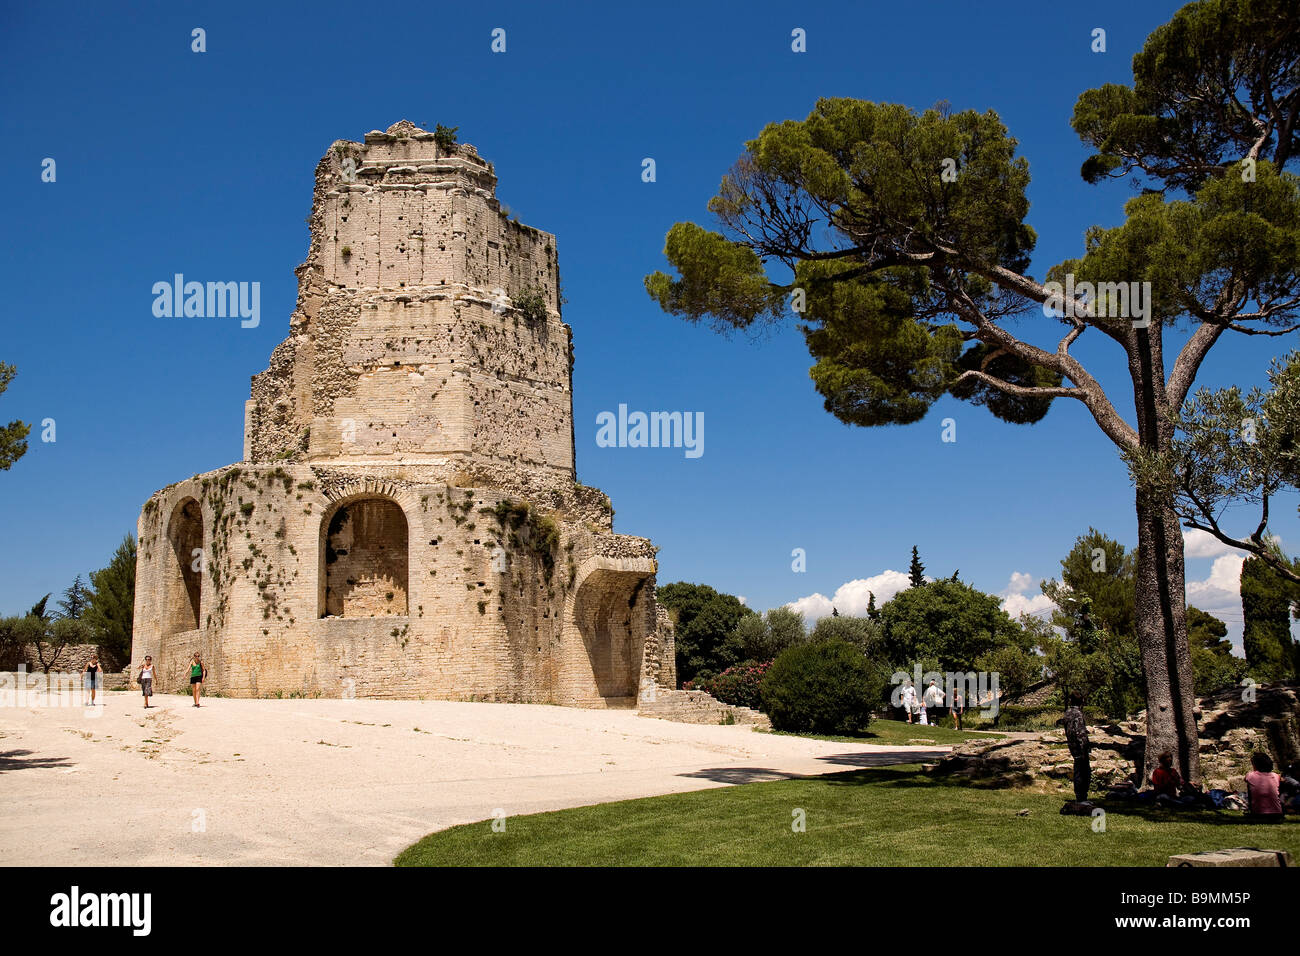 France gard nimes tour magne gallo roman tower in jardins de la stock photo royalty free - Jardin de la fontaine nimes limoges ...